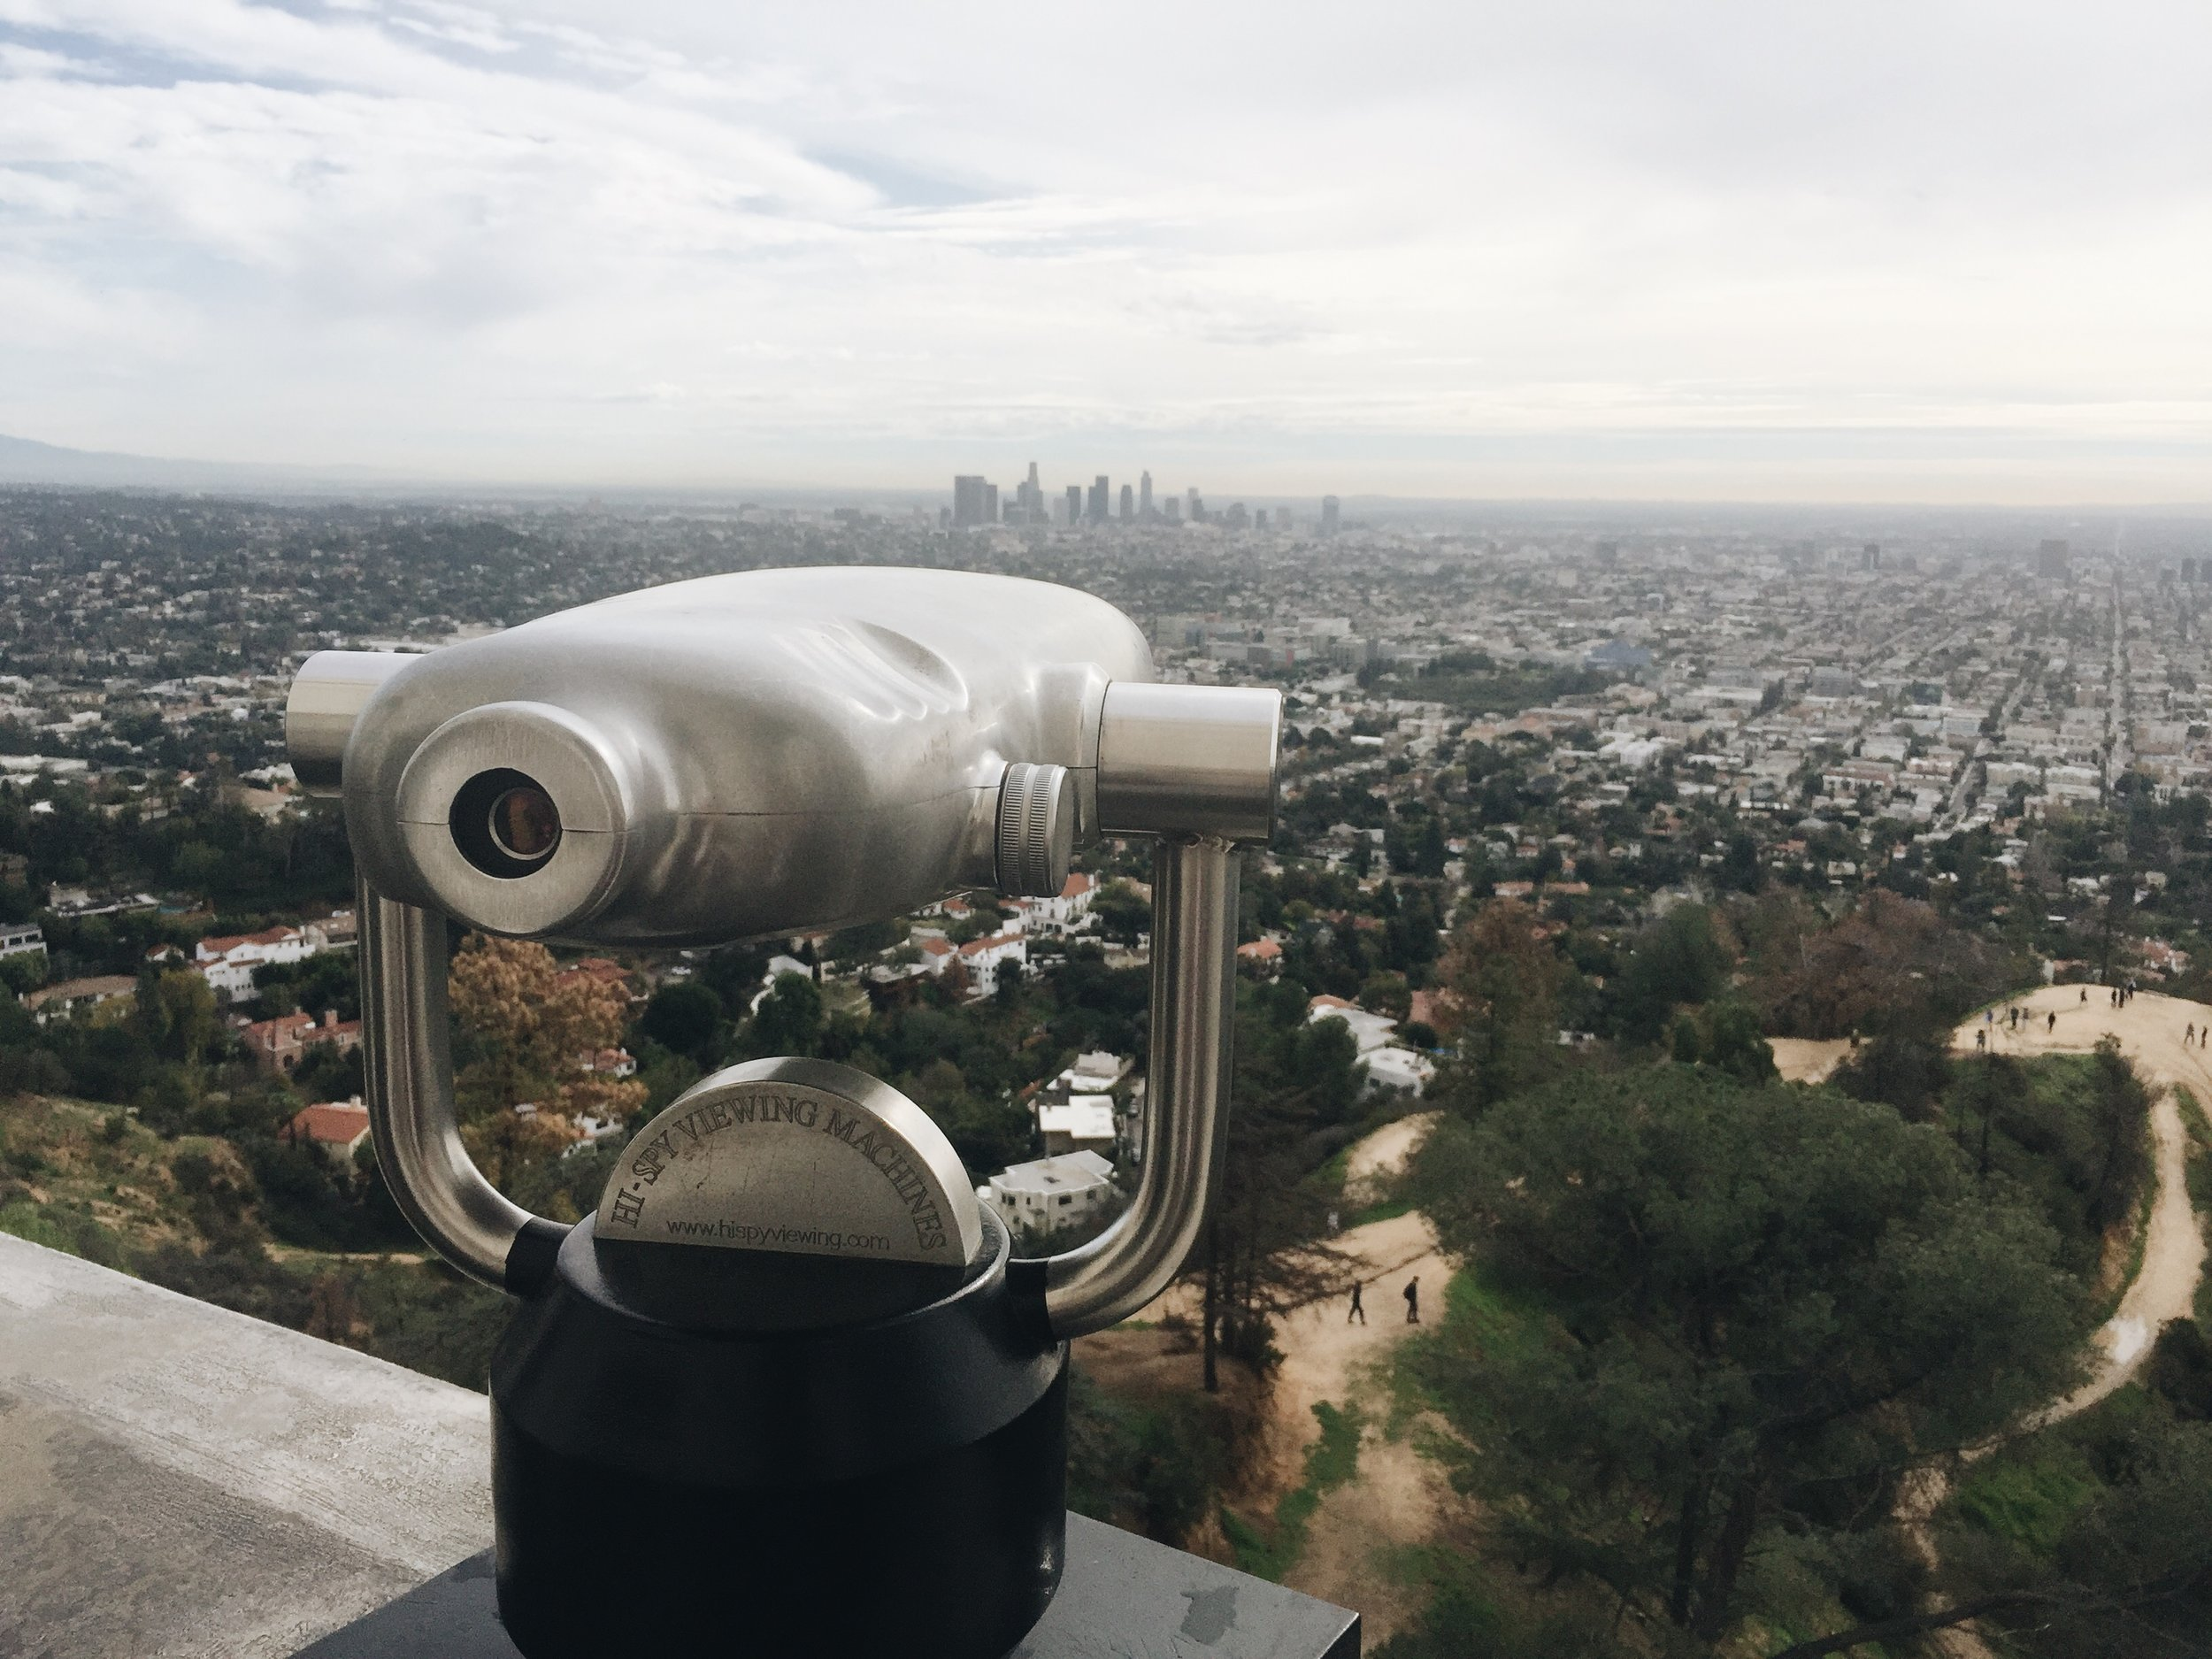 griffith-observatory-1.jpg